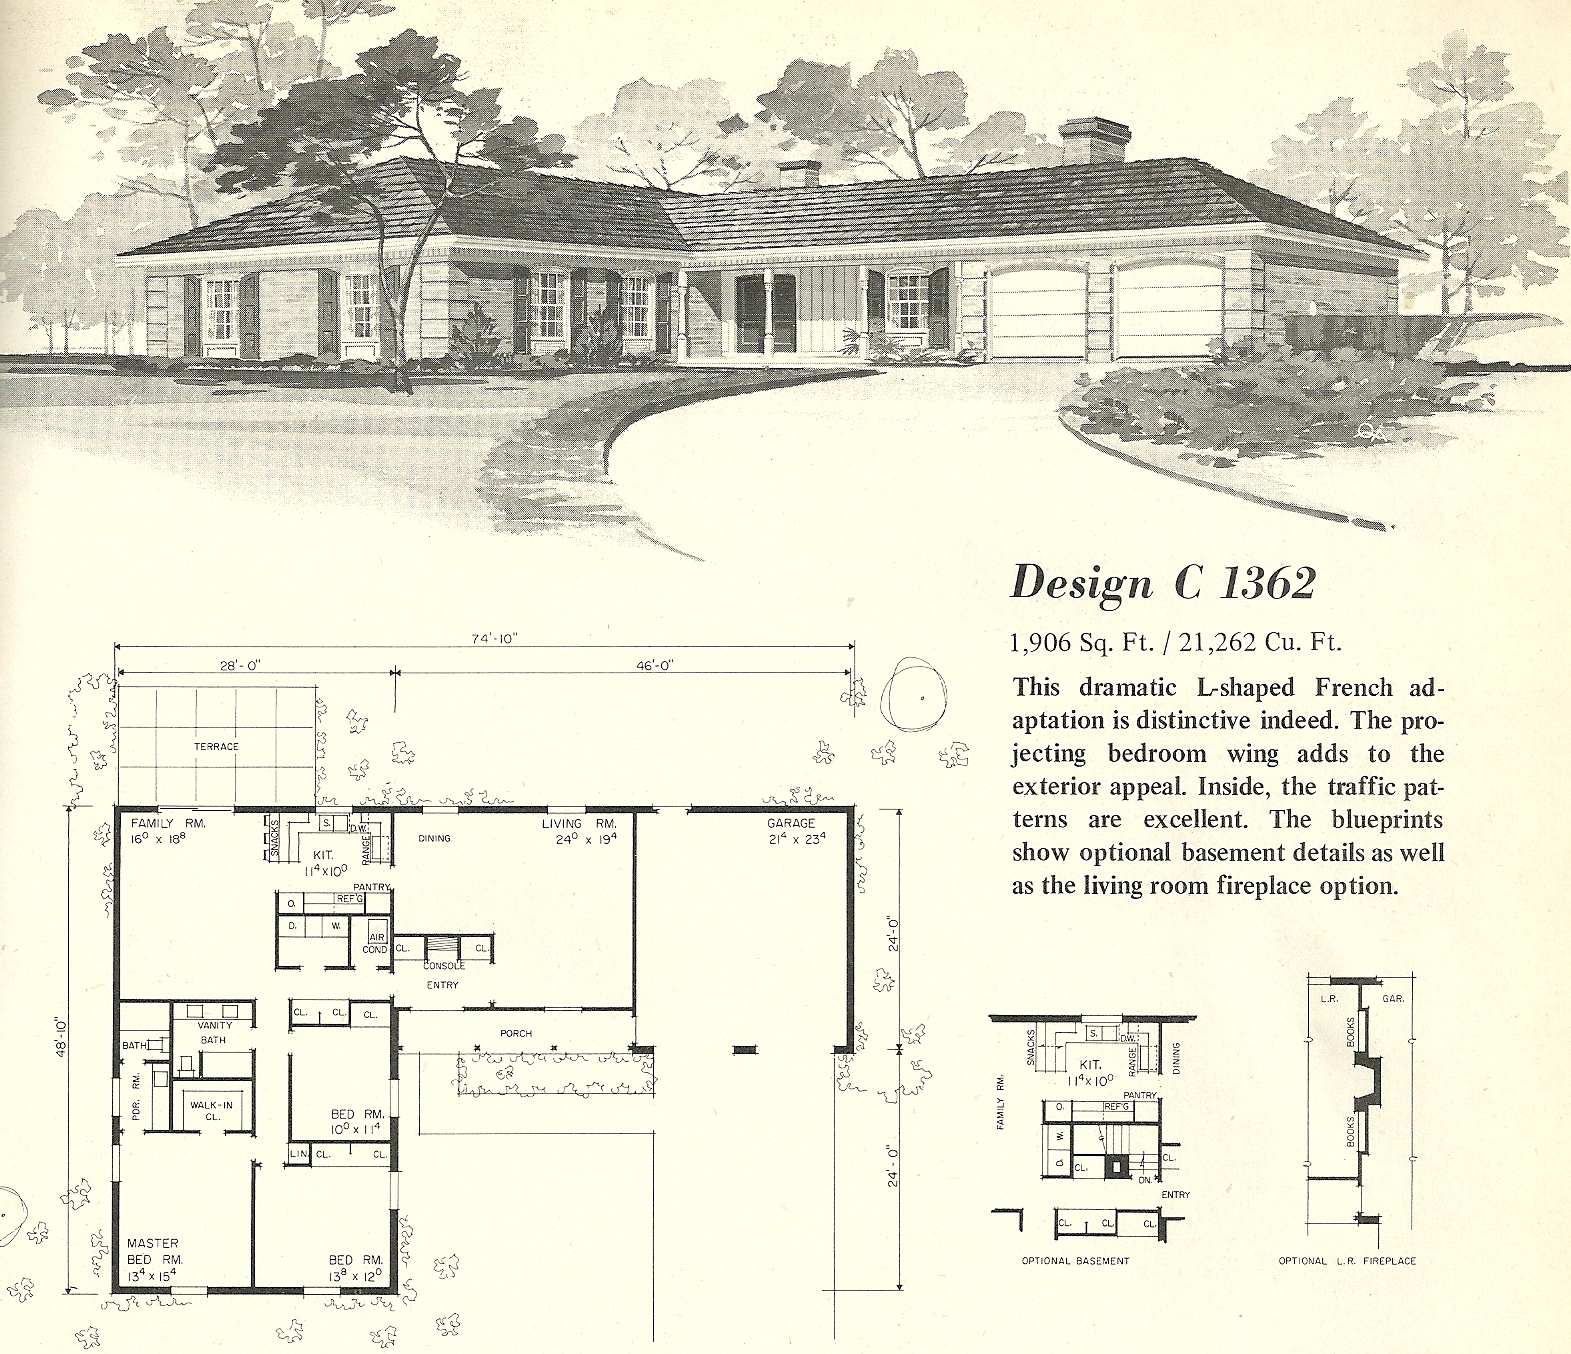 Vintage house plans 1362 antique alter ego 1960s ranch style house plans